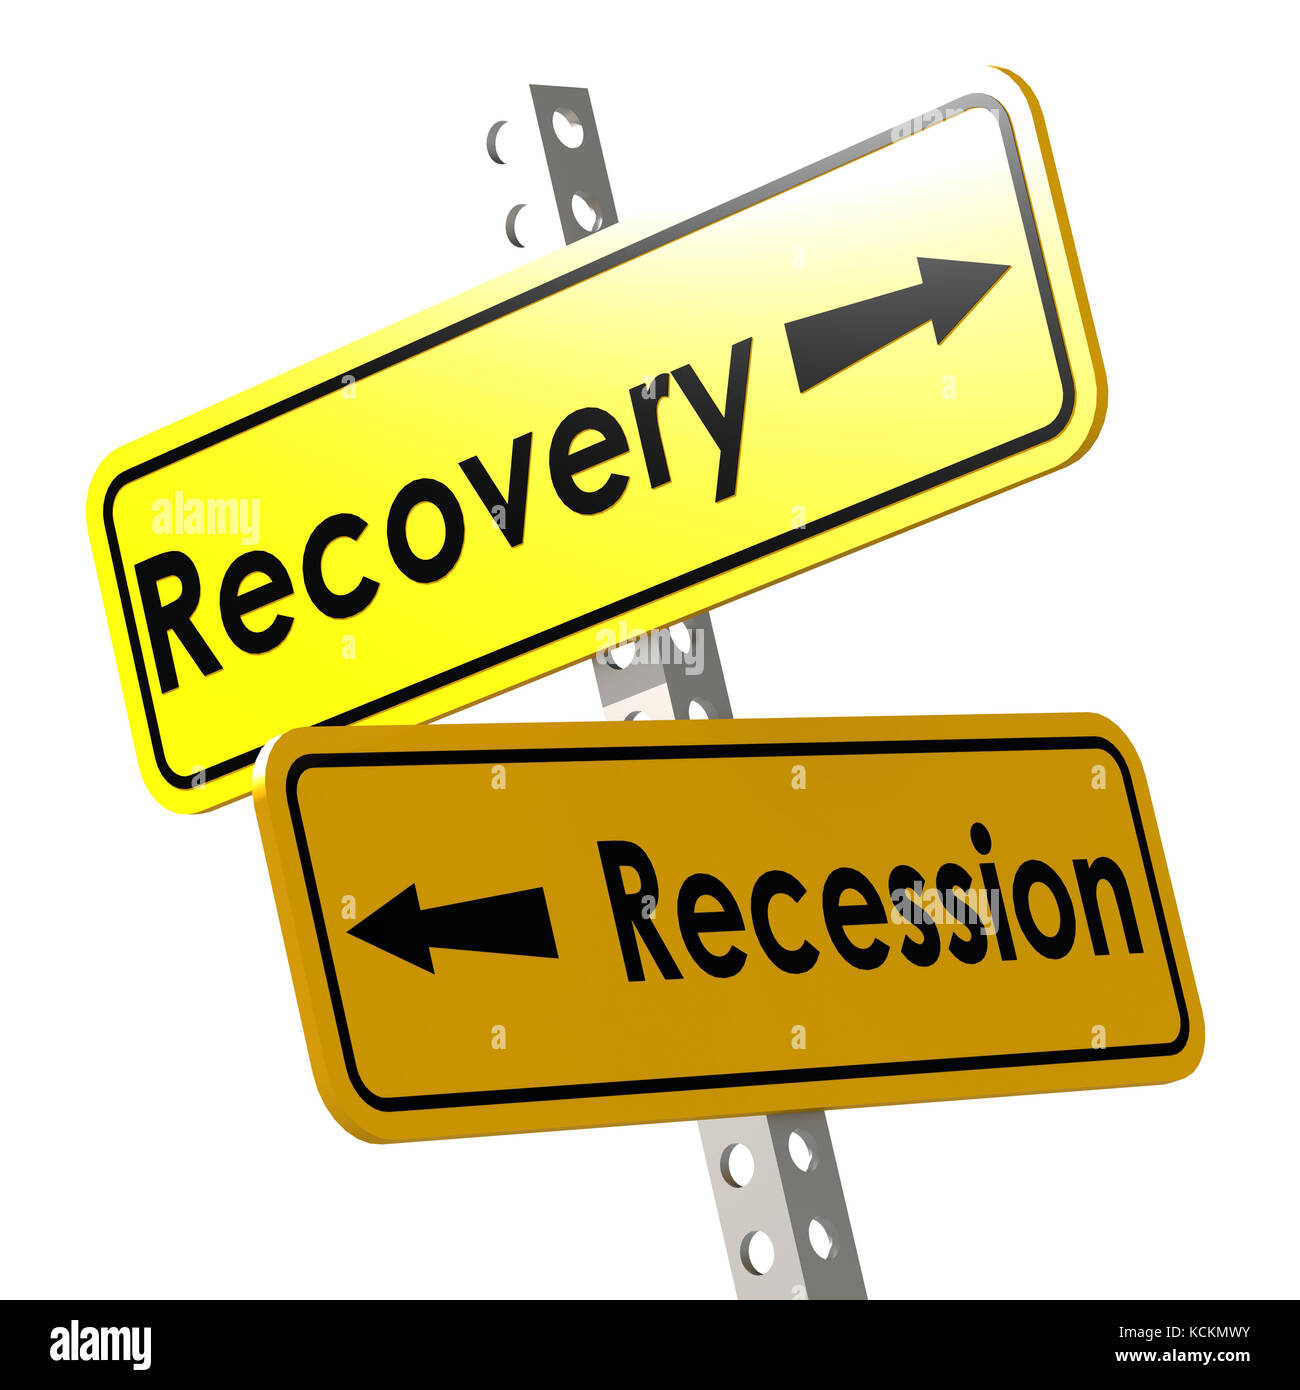 Recovery and recession with yellow road sign image with hi-res rendered artwork that could be used for any graphic - Stock Image